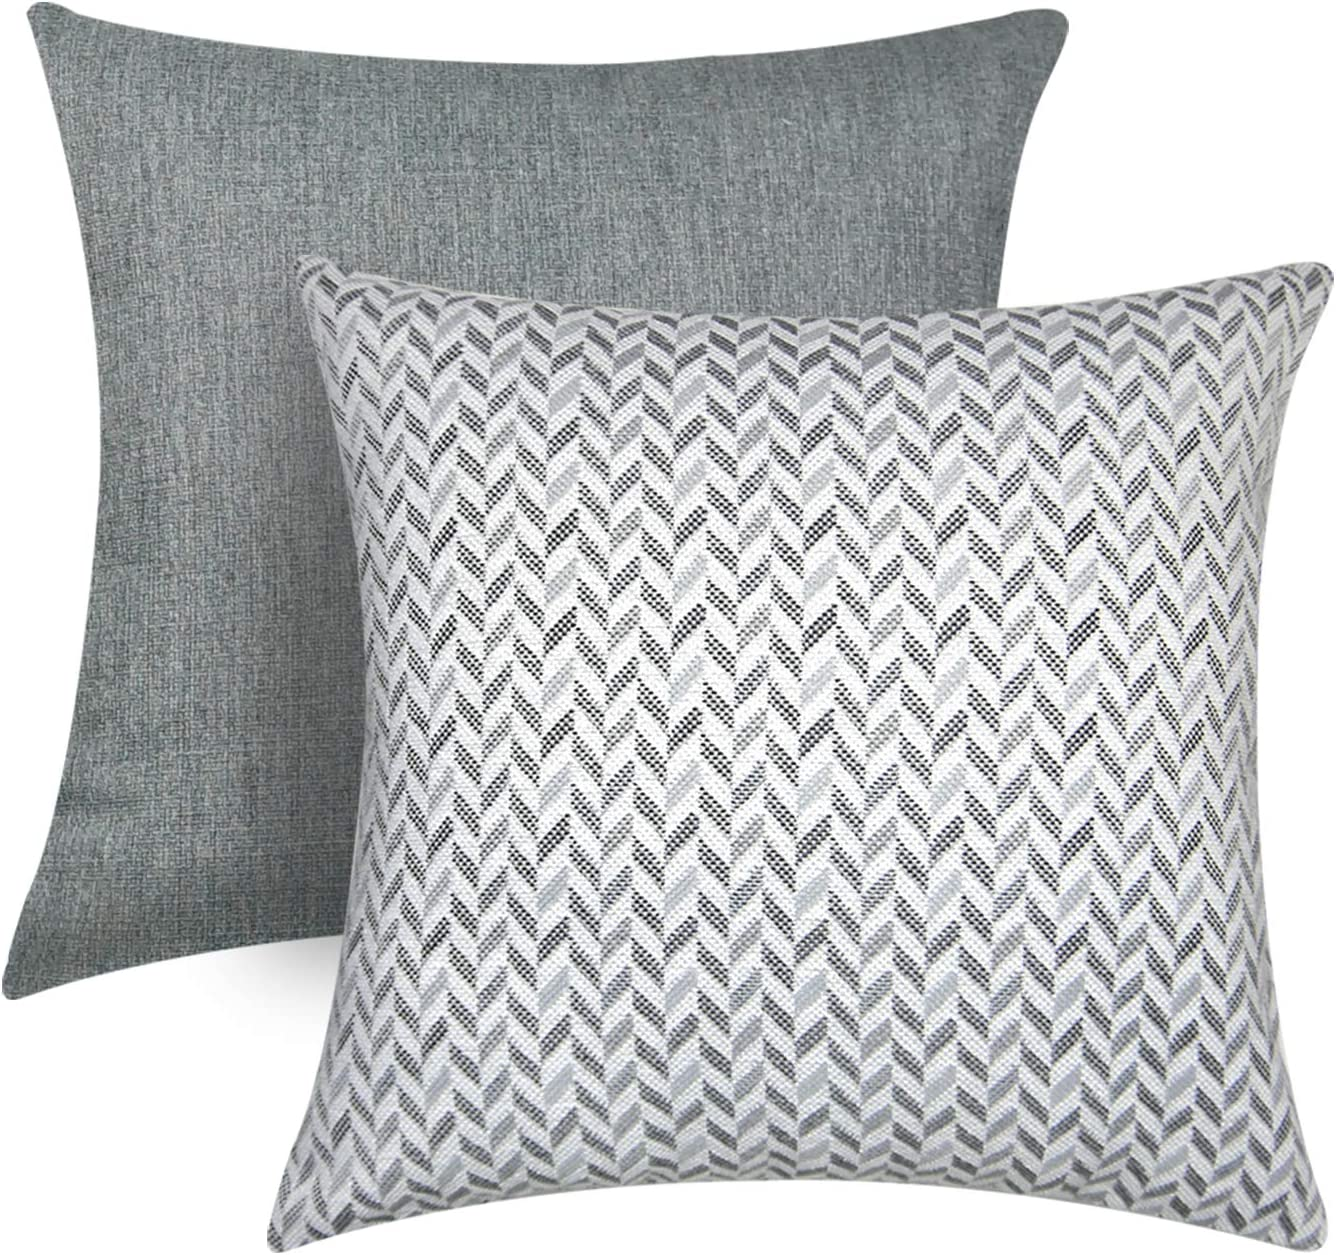 Sunlit Decorative Throw Pillows Cushion Cover Modern Accent Square Pillow 18 X 18 Set Of 2 Gray And Arrow Patterns For Sofa Couch Chair Bedroom Car Gray Amazon Ca Home Kitchen